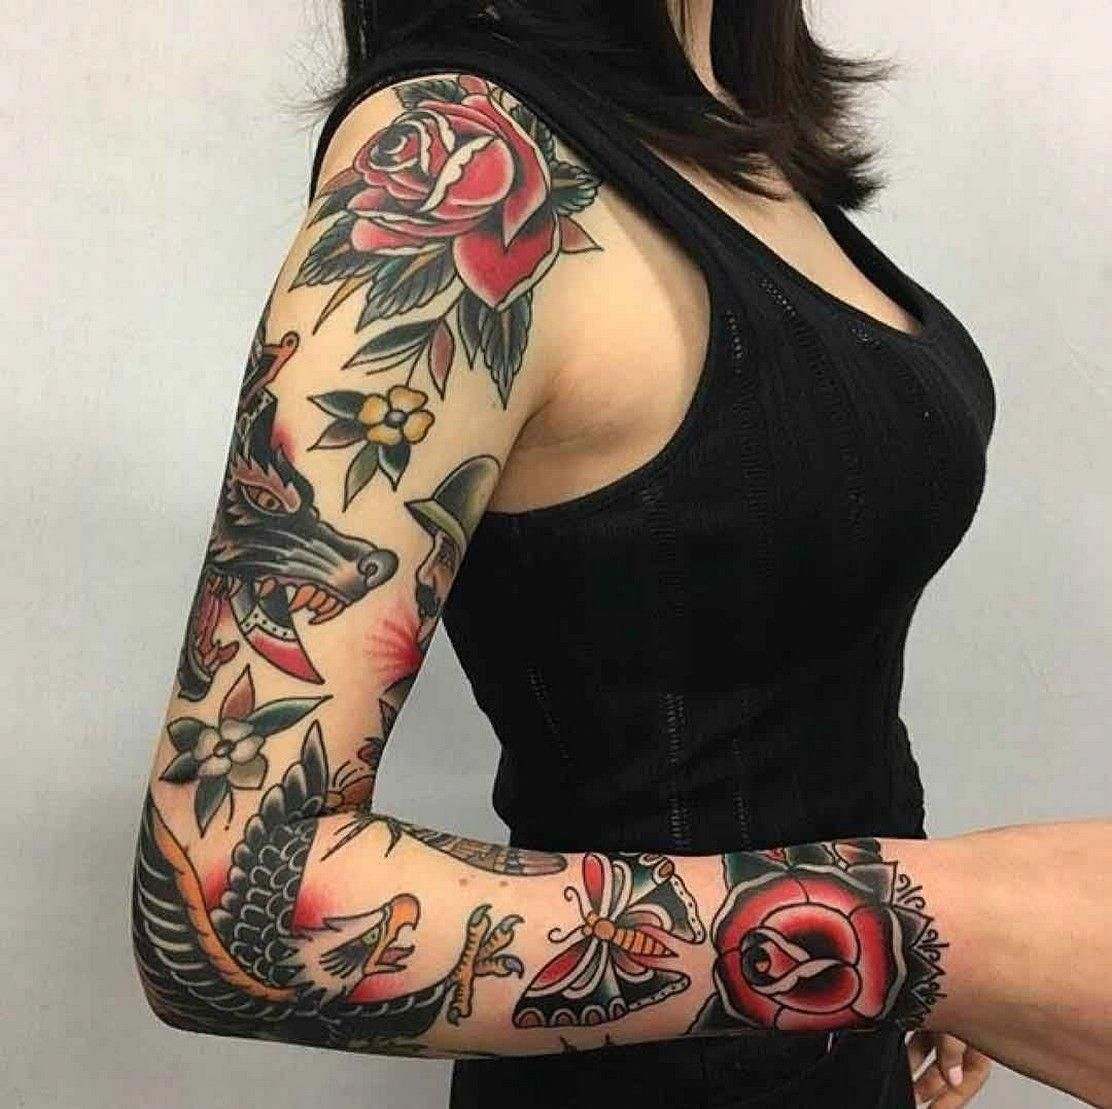 50 Tattoo Sleeve Female Collection In 2020 Sleeve Tattoos For Women Traditional Tattoo Sleeve Tattoo Sleeve Designs